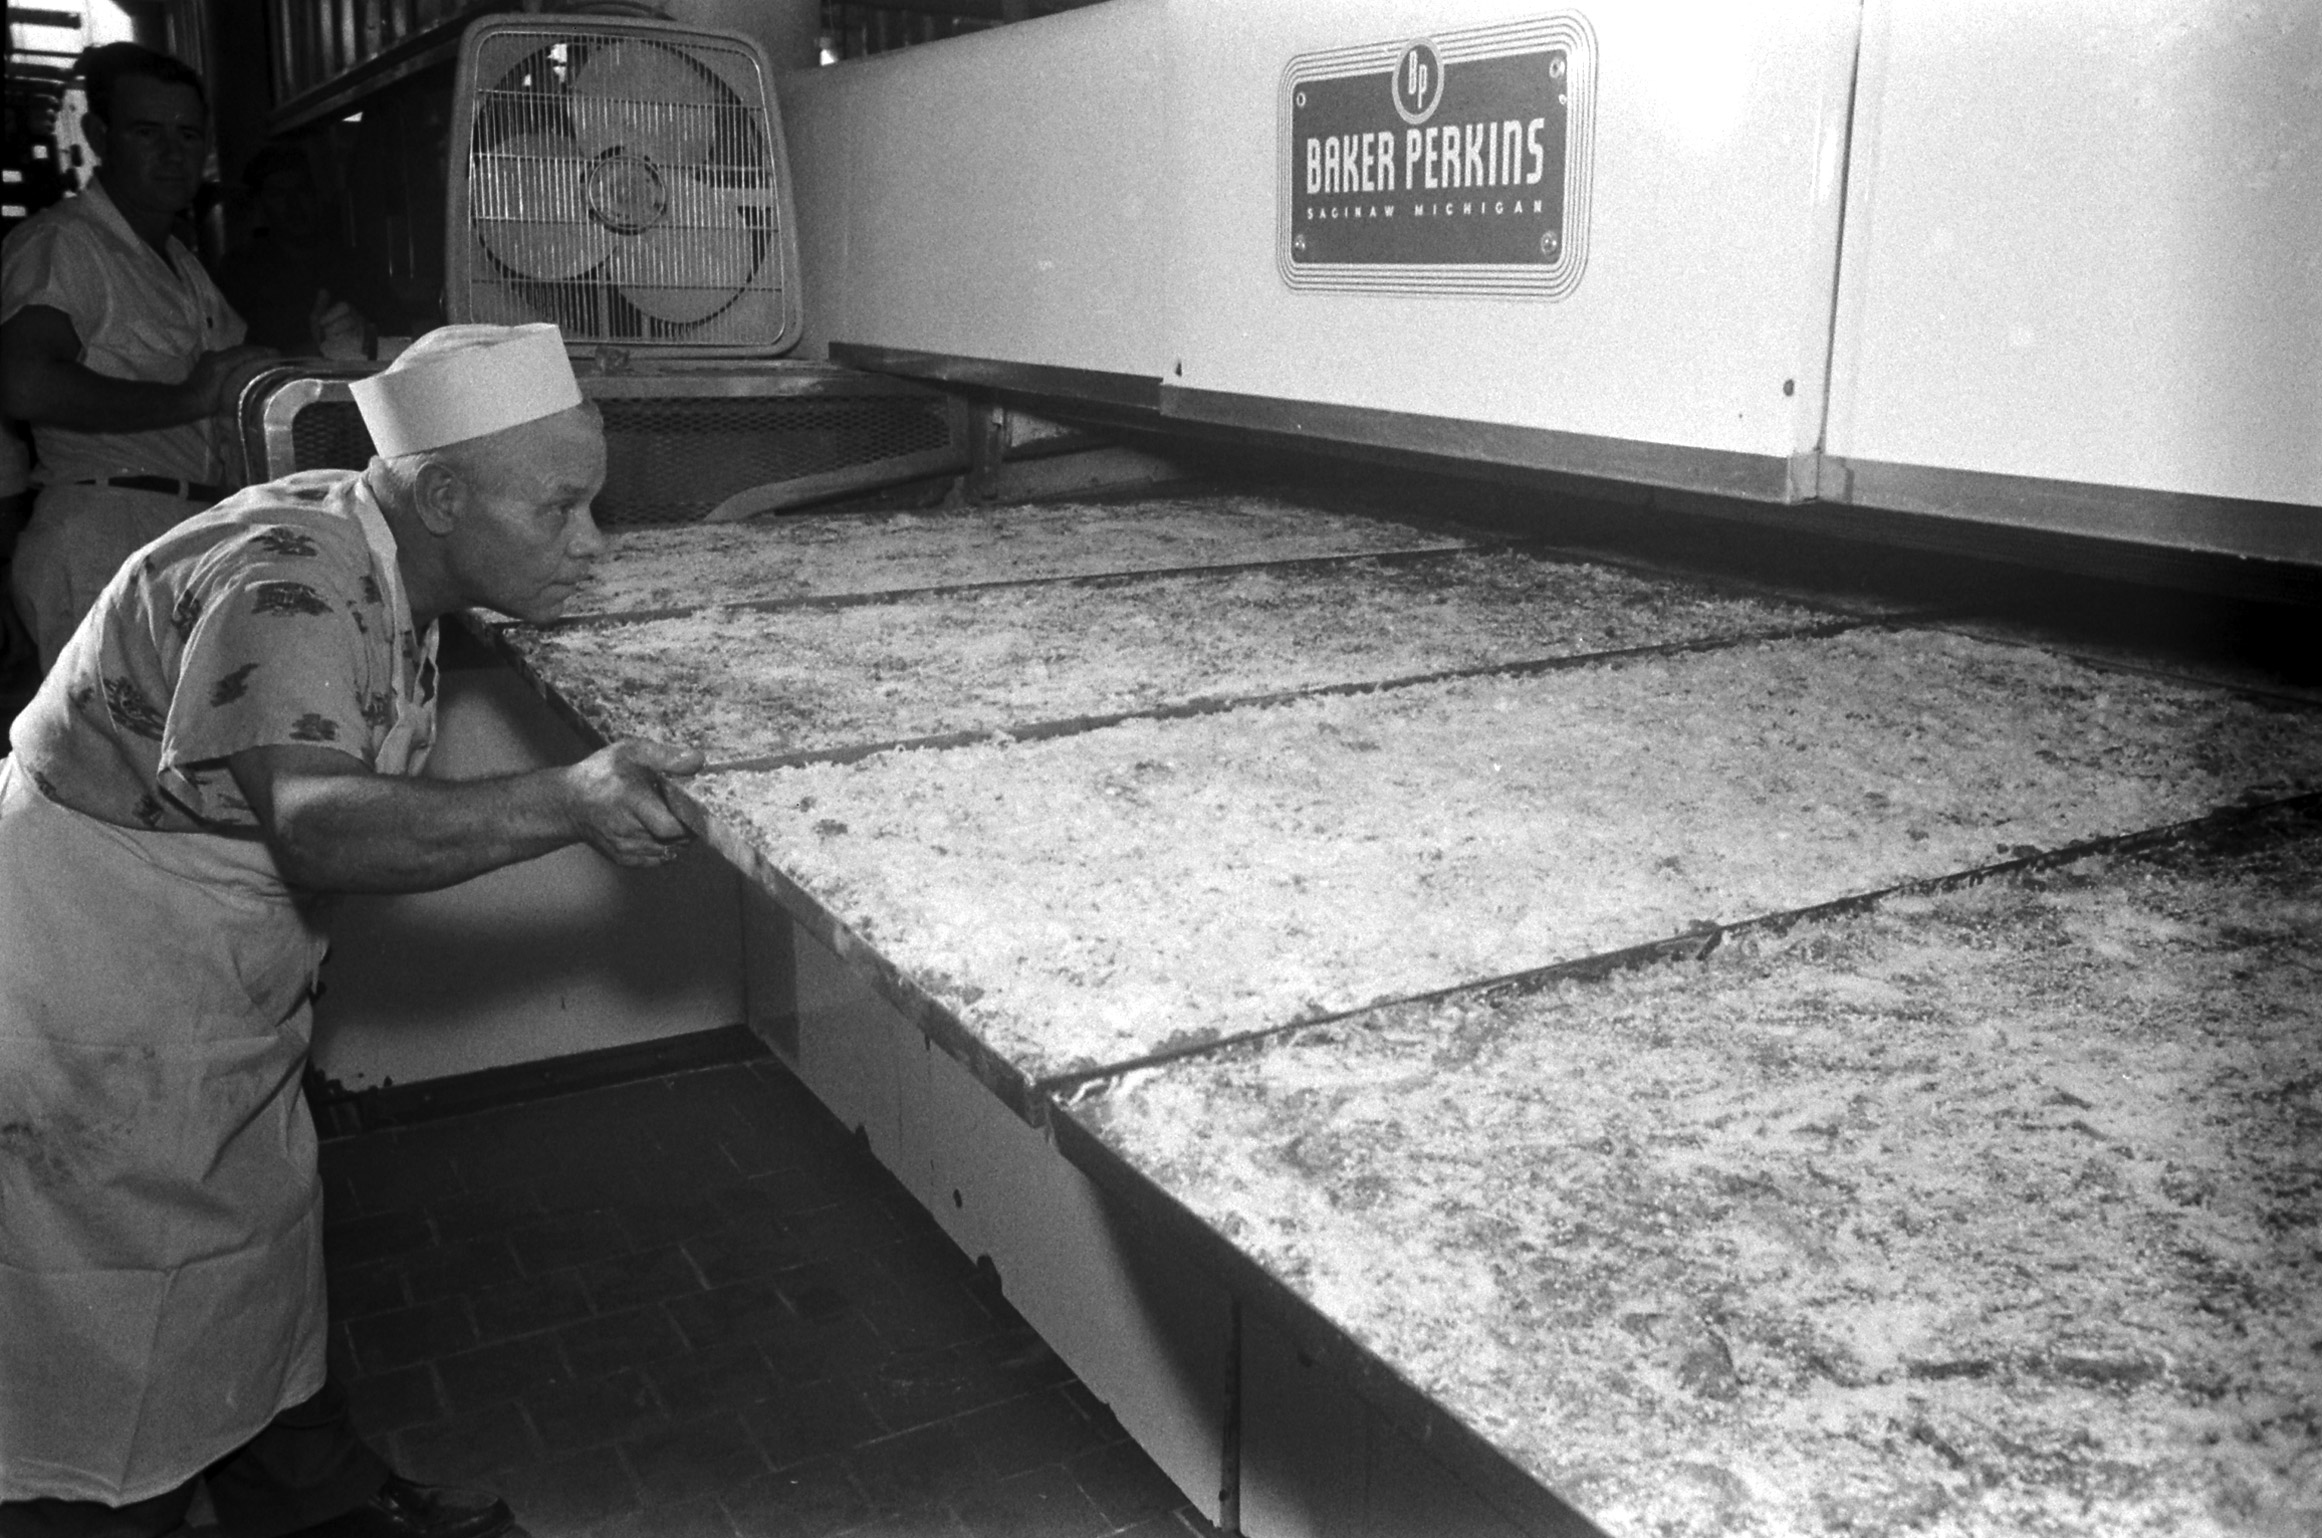 A 10-foot pizza going into the oven.